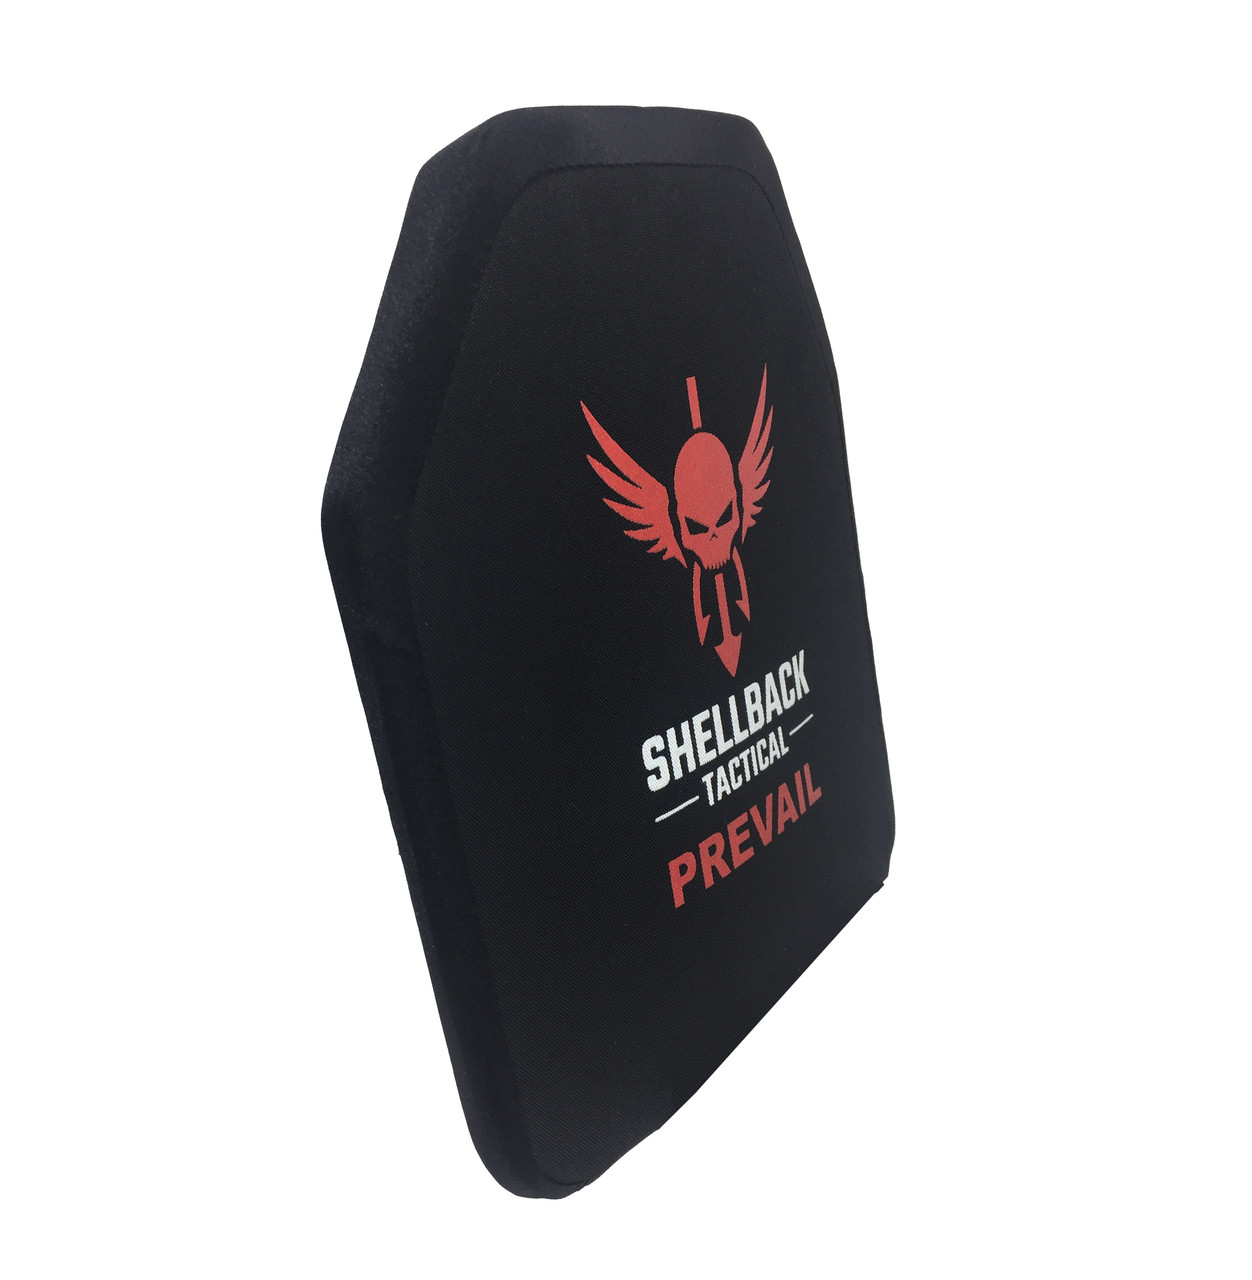 Shellback Tactical Prevail Series 10 x 12 NIJ 0101 06 Certified Stand Alone  10 Year Warranty Level IV Hard Armor Plate